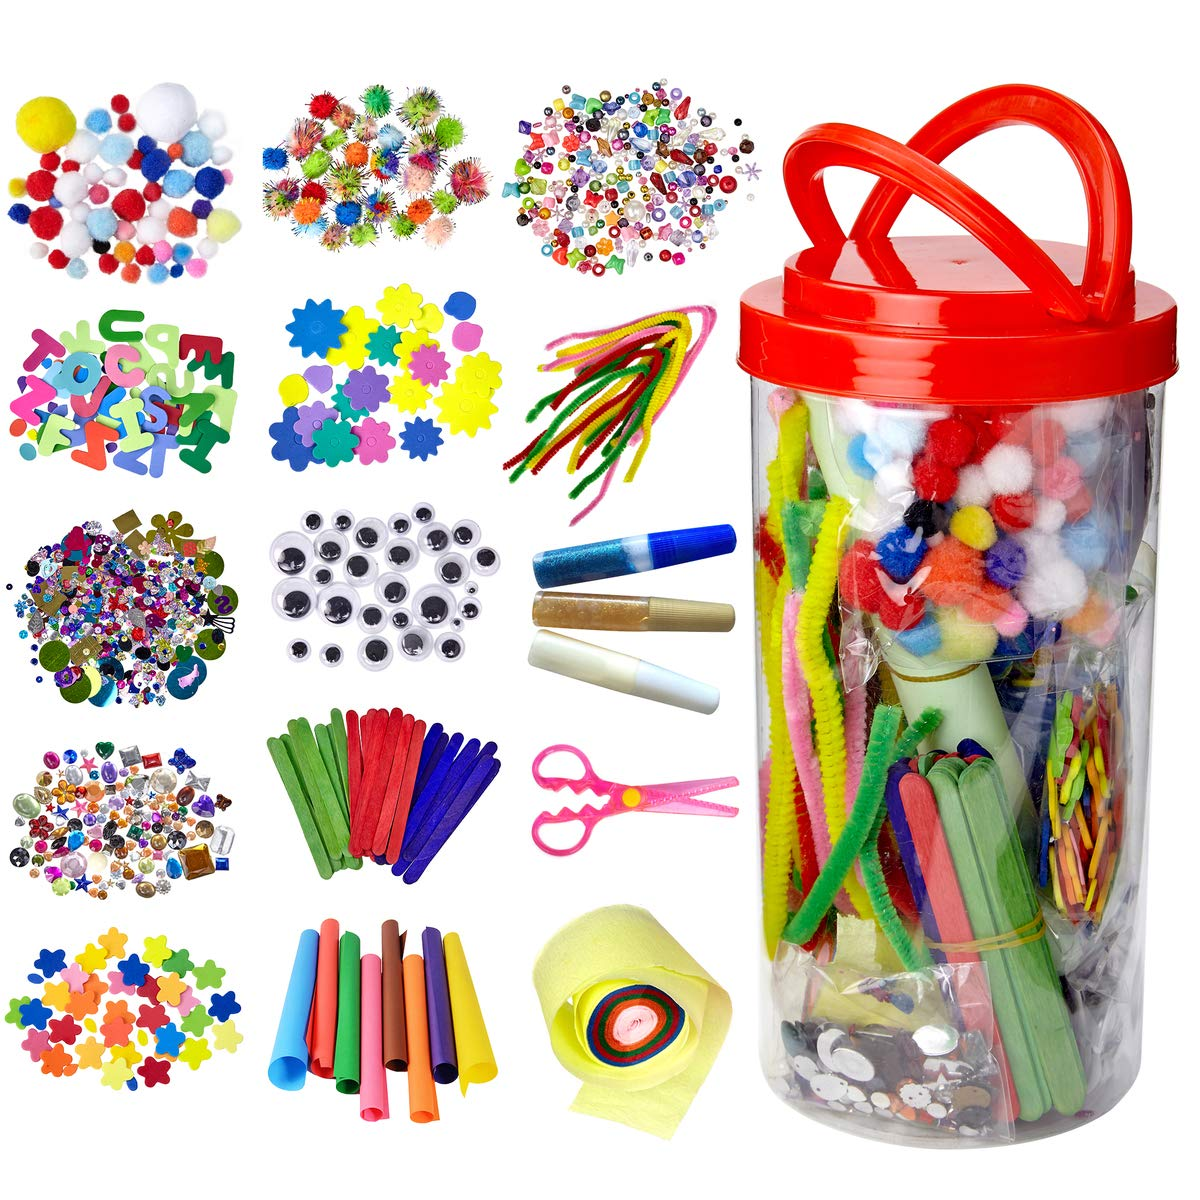 Dragon Too Mega Kids Art Supplies Jar – Over 1,000 Pieces of Colorful and Creative Arts and Crafts Materials - Glue, Safety Scissors, Pompoms, Popsicle Sticks, Pipe Cleaners and Loads More